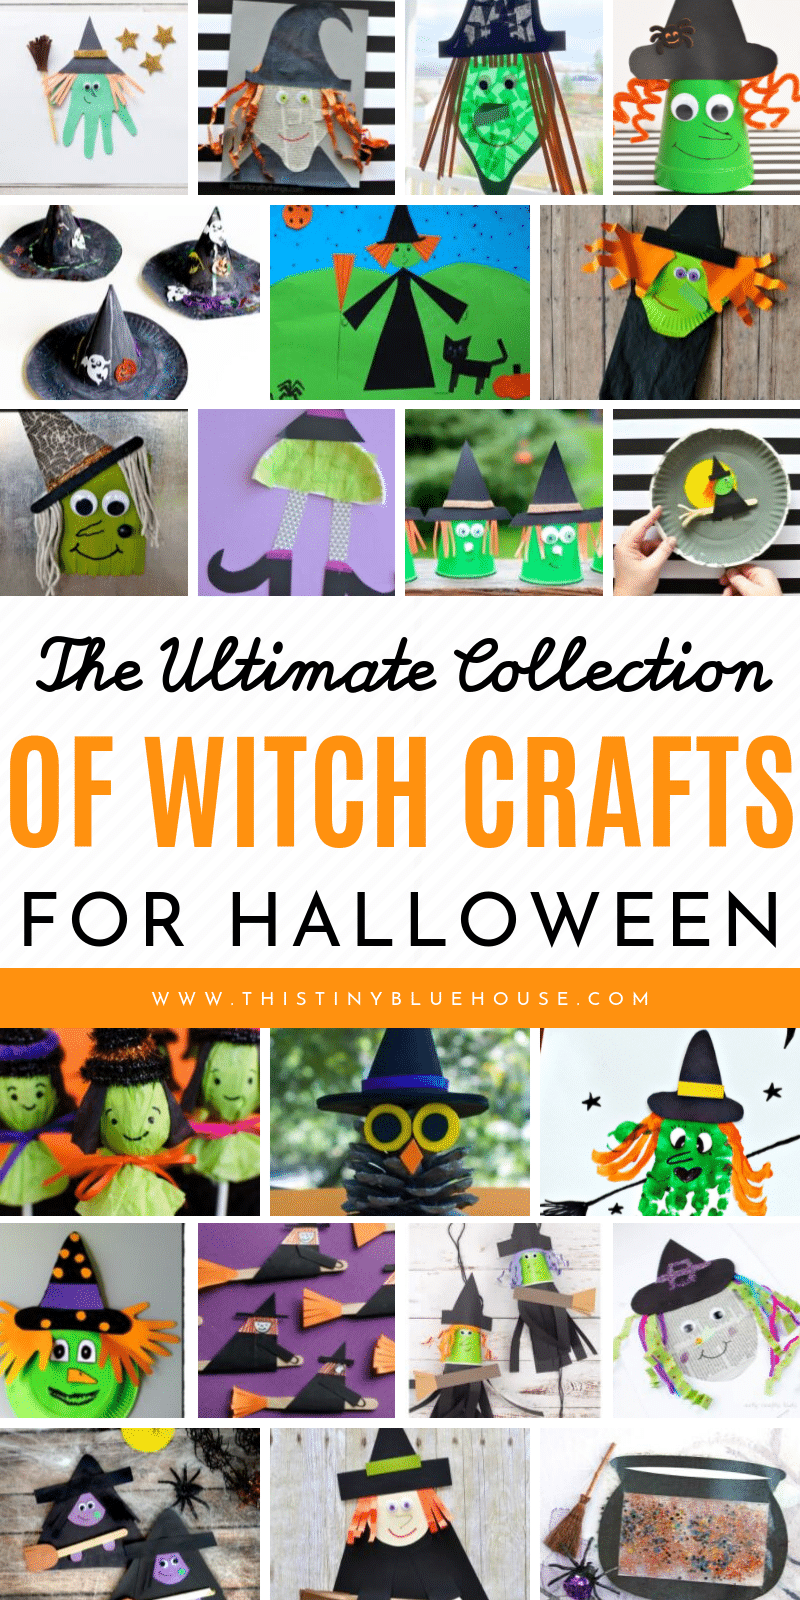 Get kids super excited about Halloween with these non scary witch Halloween crafts. With 20+ witch crafts to choose from these crafts are guarnateed fun! #halloweencrafts #halloweencraftsforkids #witchcrafts #witchcraftsforkids #easyhalloweencraftsforkids #nonscaryhalloweencrafts